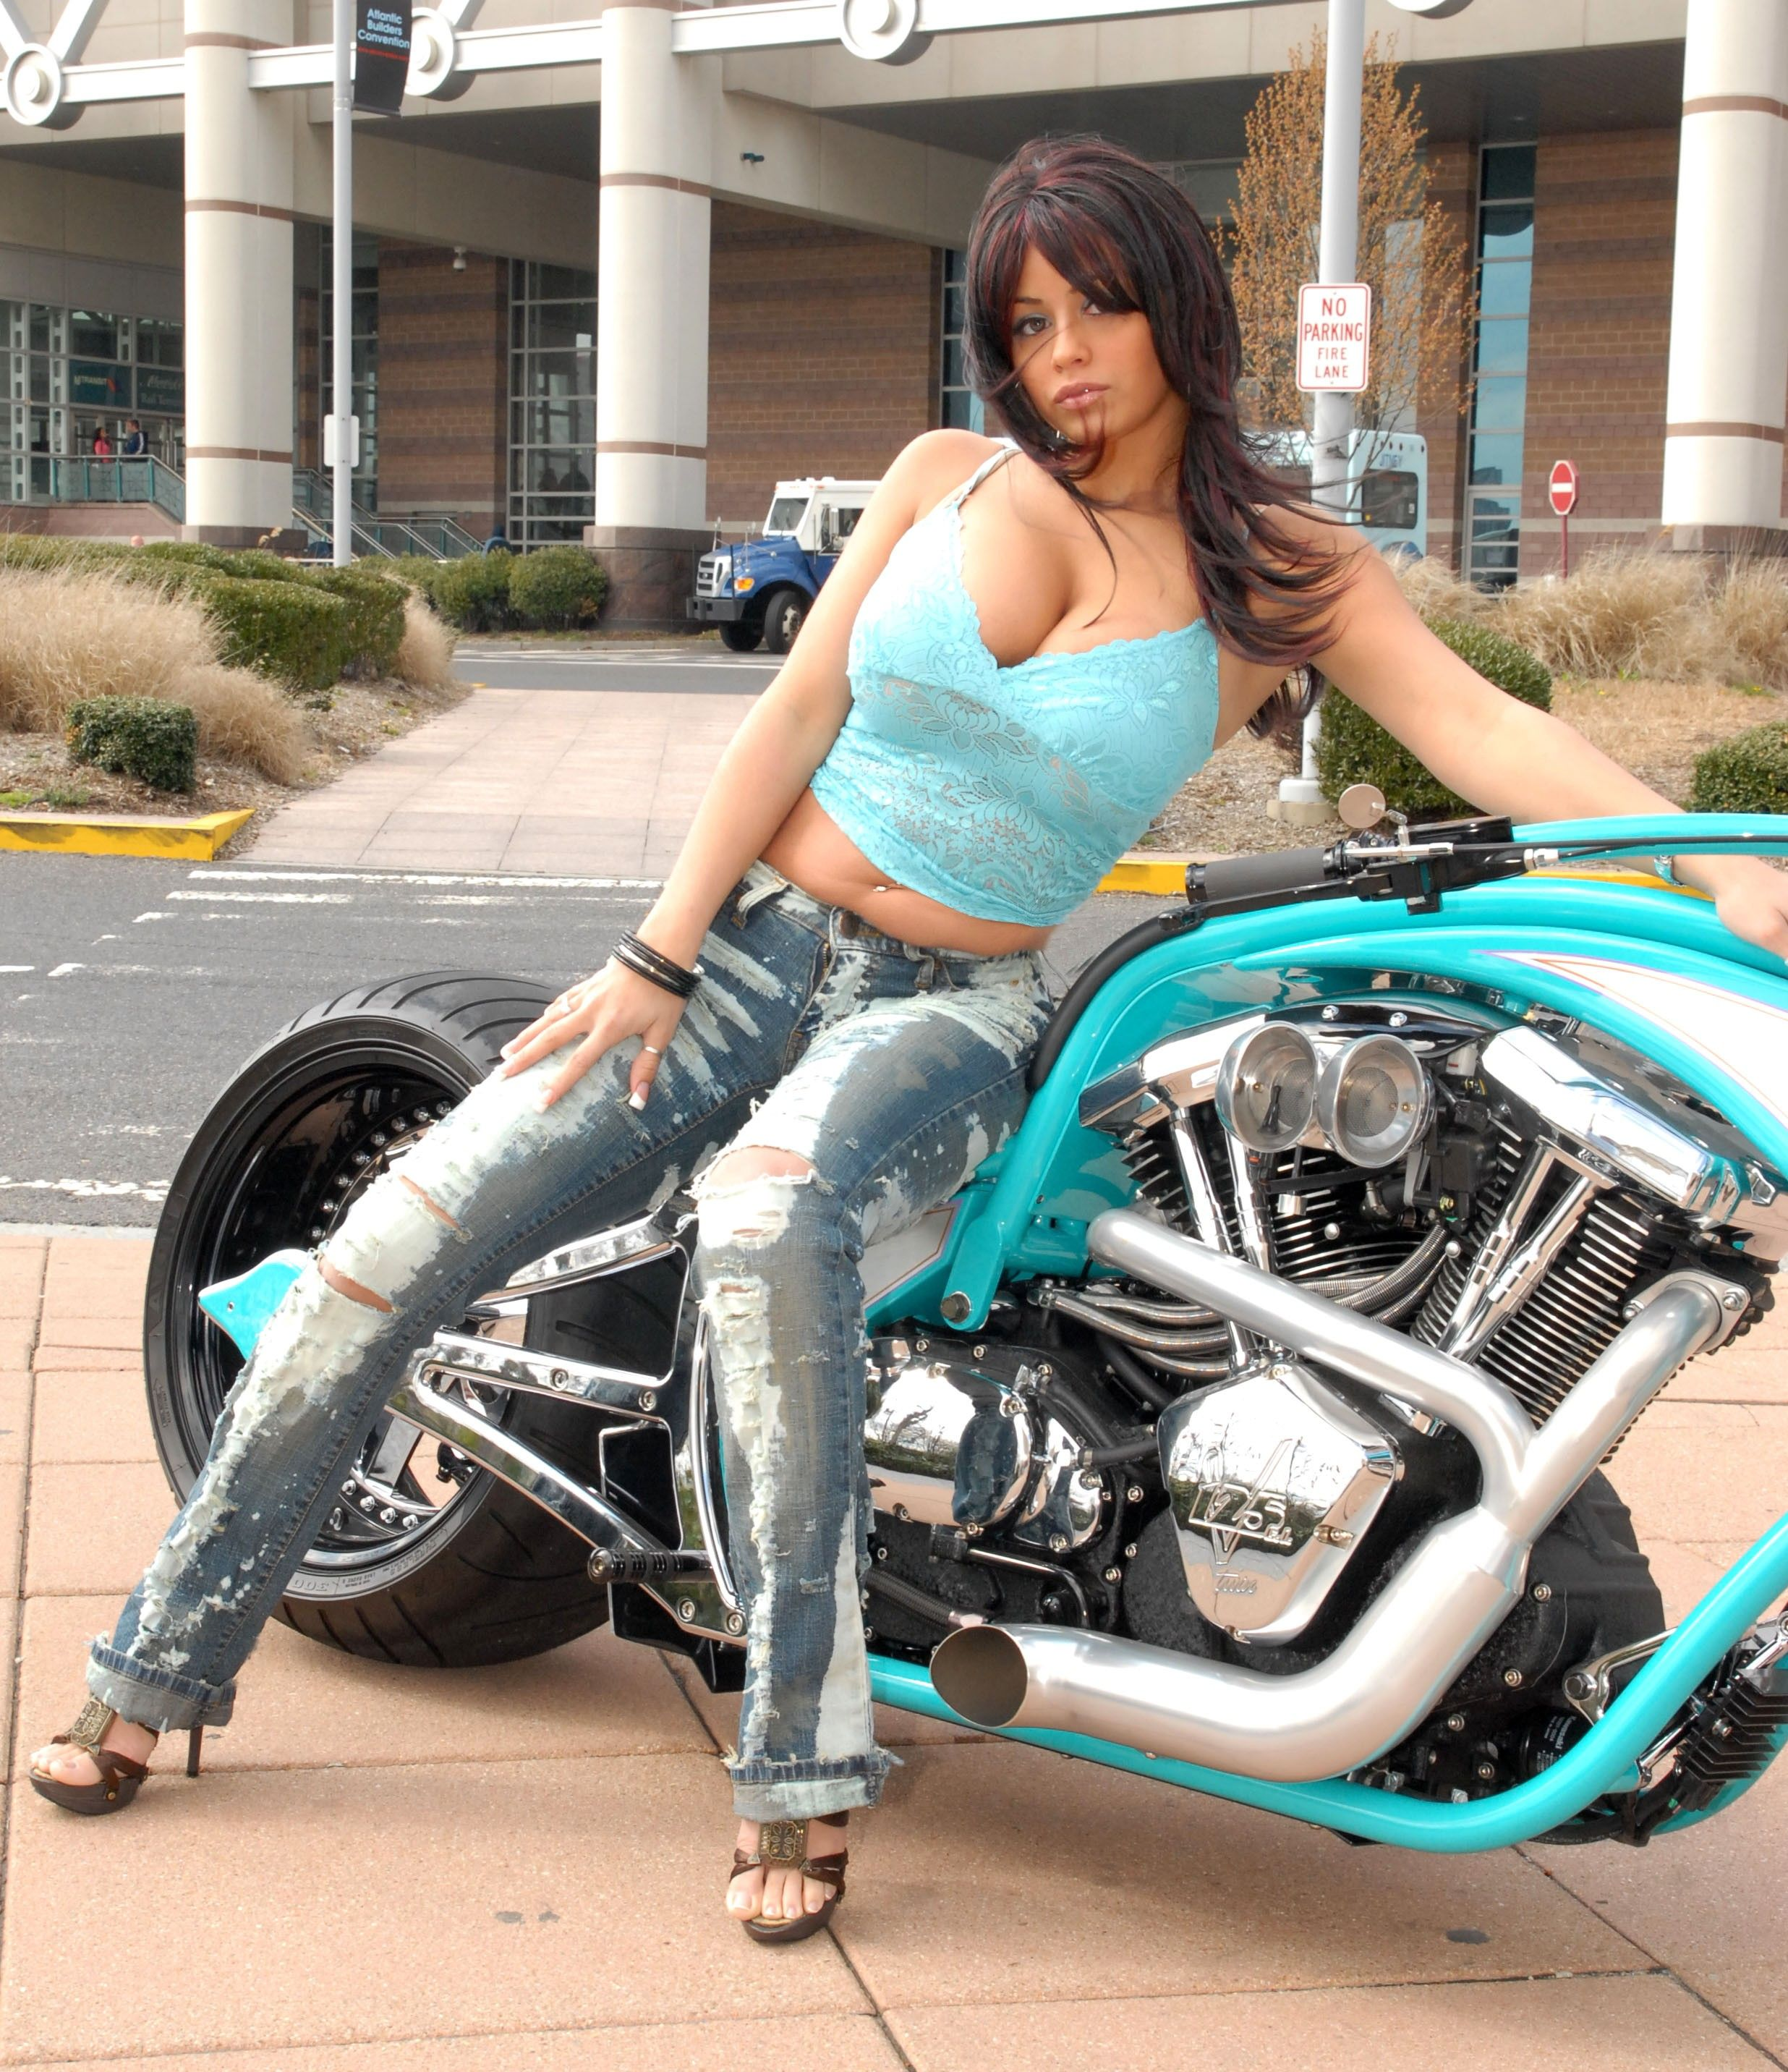 Sexy babes with bikes